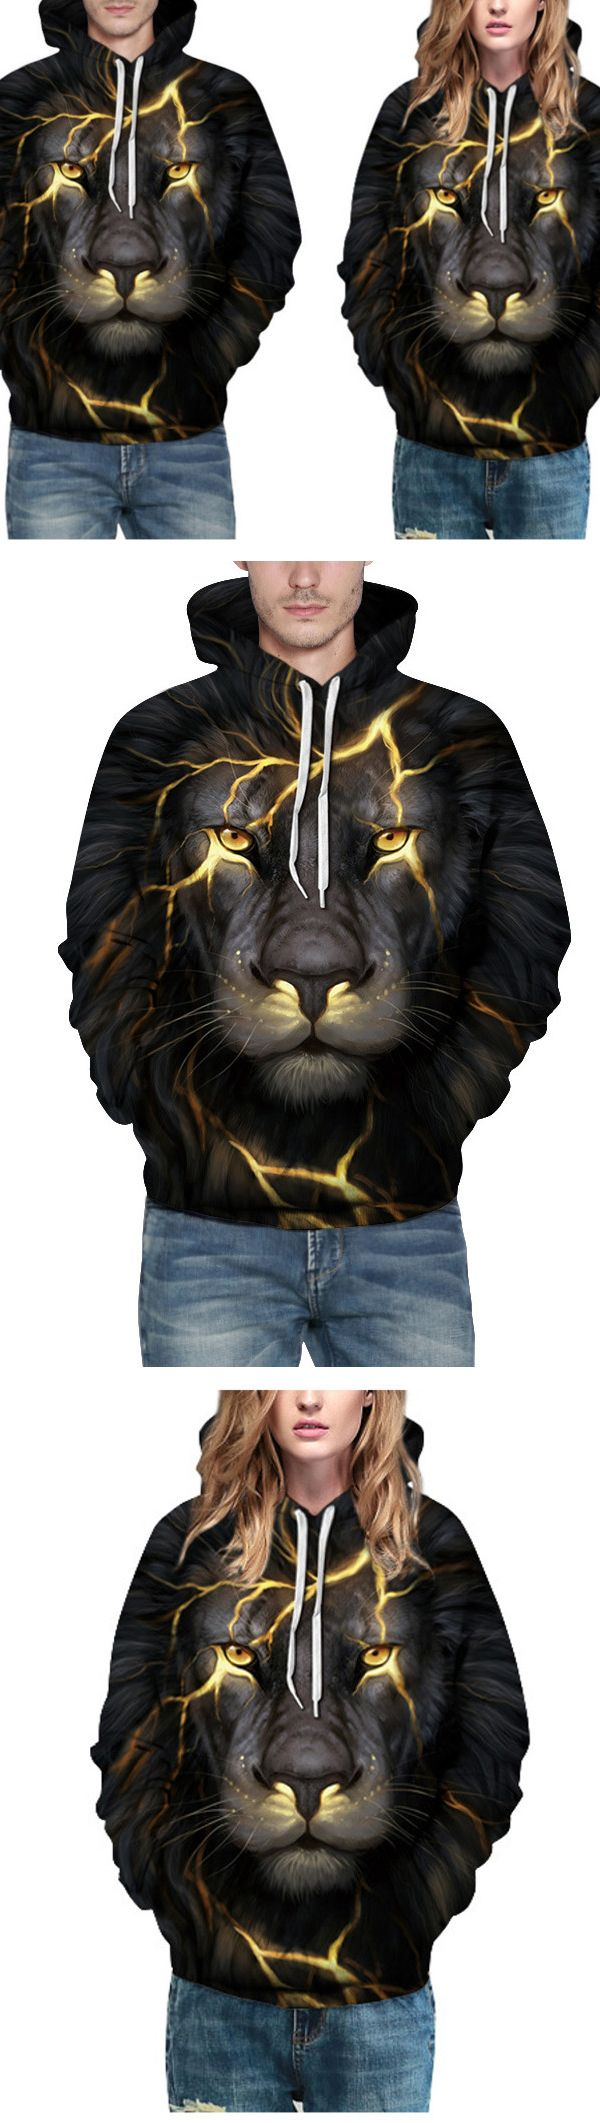 US$31.97 + Free shipping. Size: S~3XL. Fall in love with casual and sports style! Fashion Personality Lion Hooded Sweater Unisex Casual Digital Printing Baseball Uniform Sport Hoodie. #hoodies #unisex